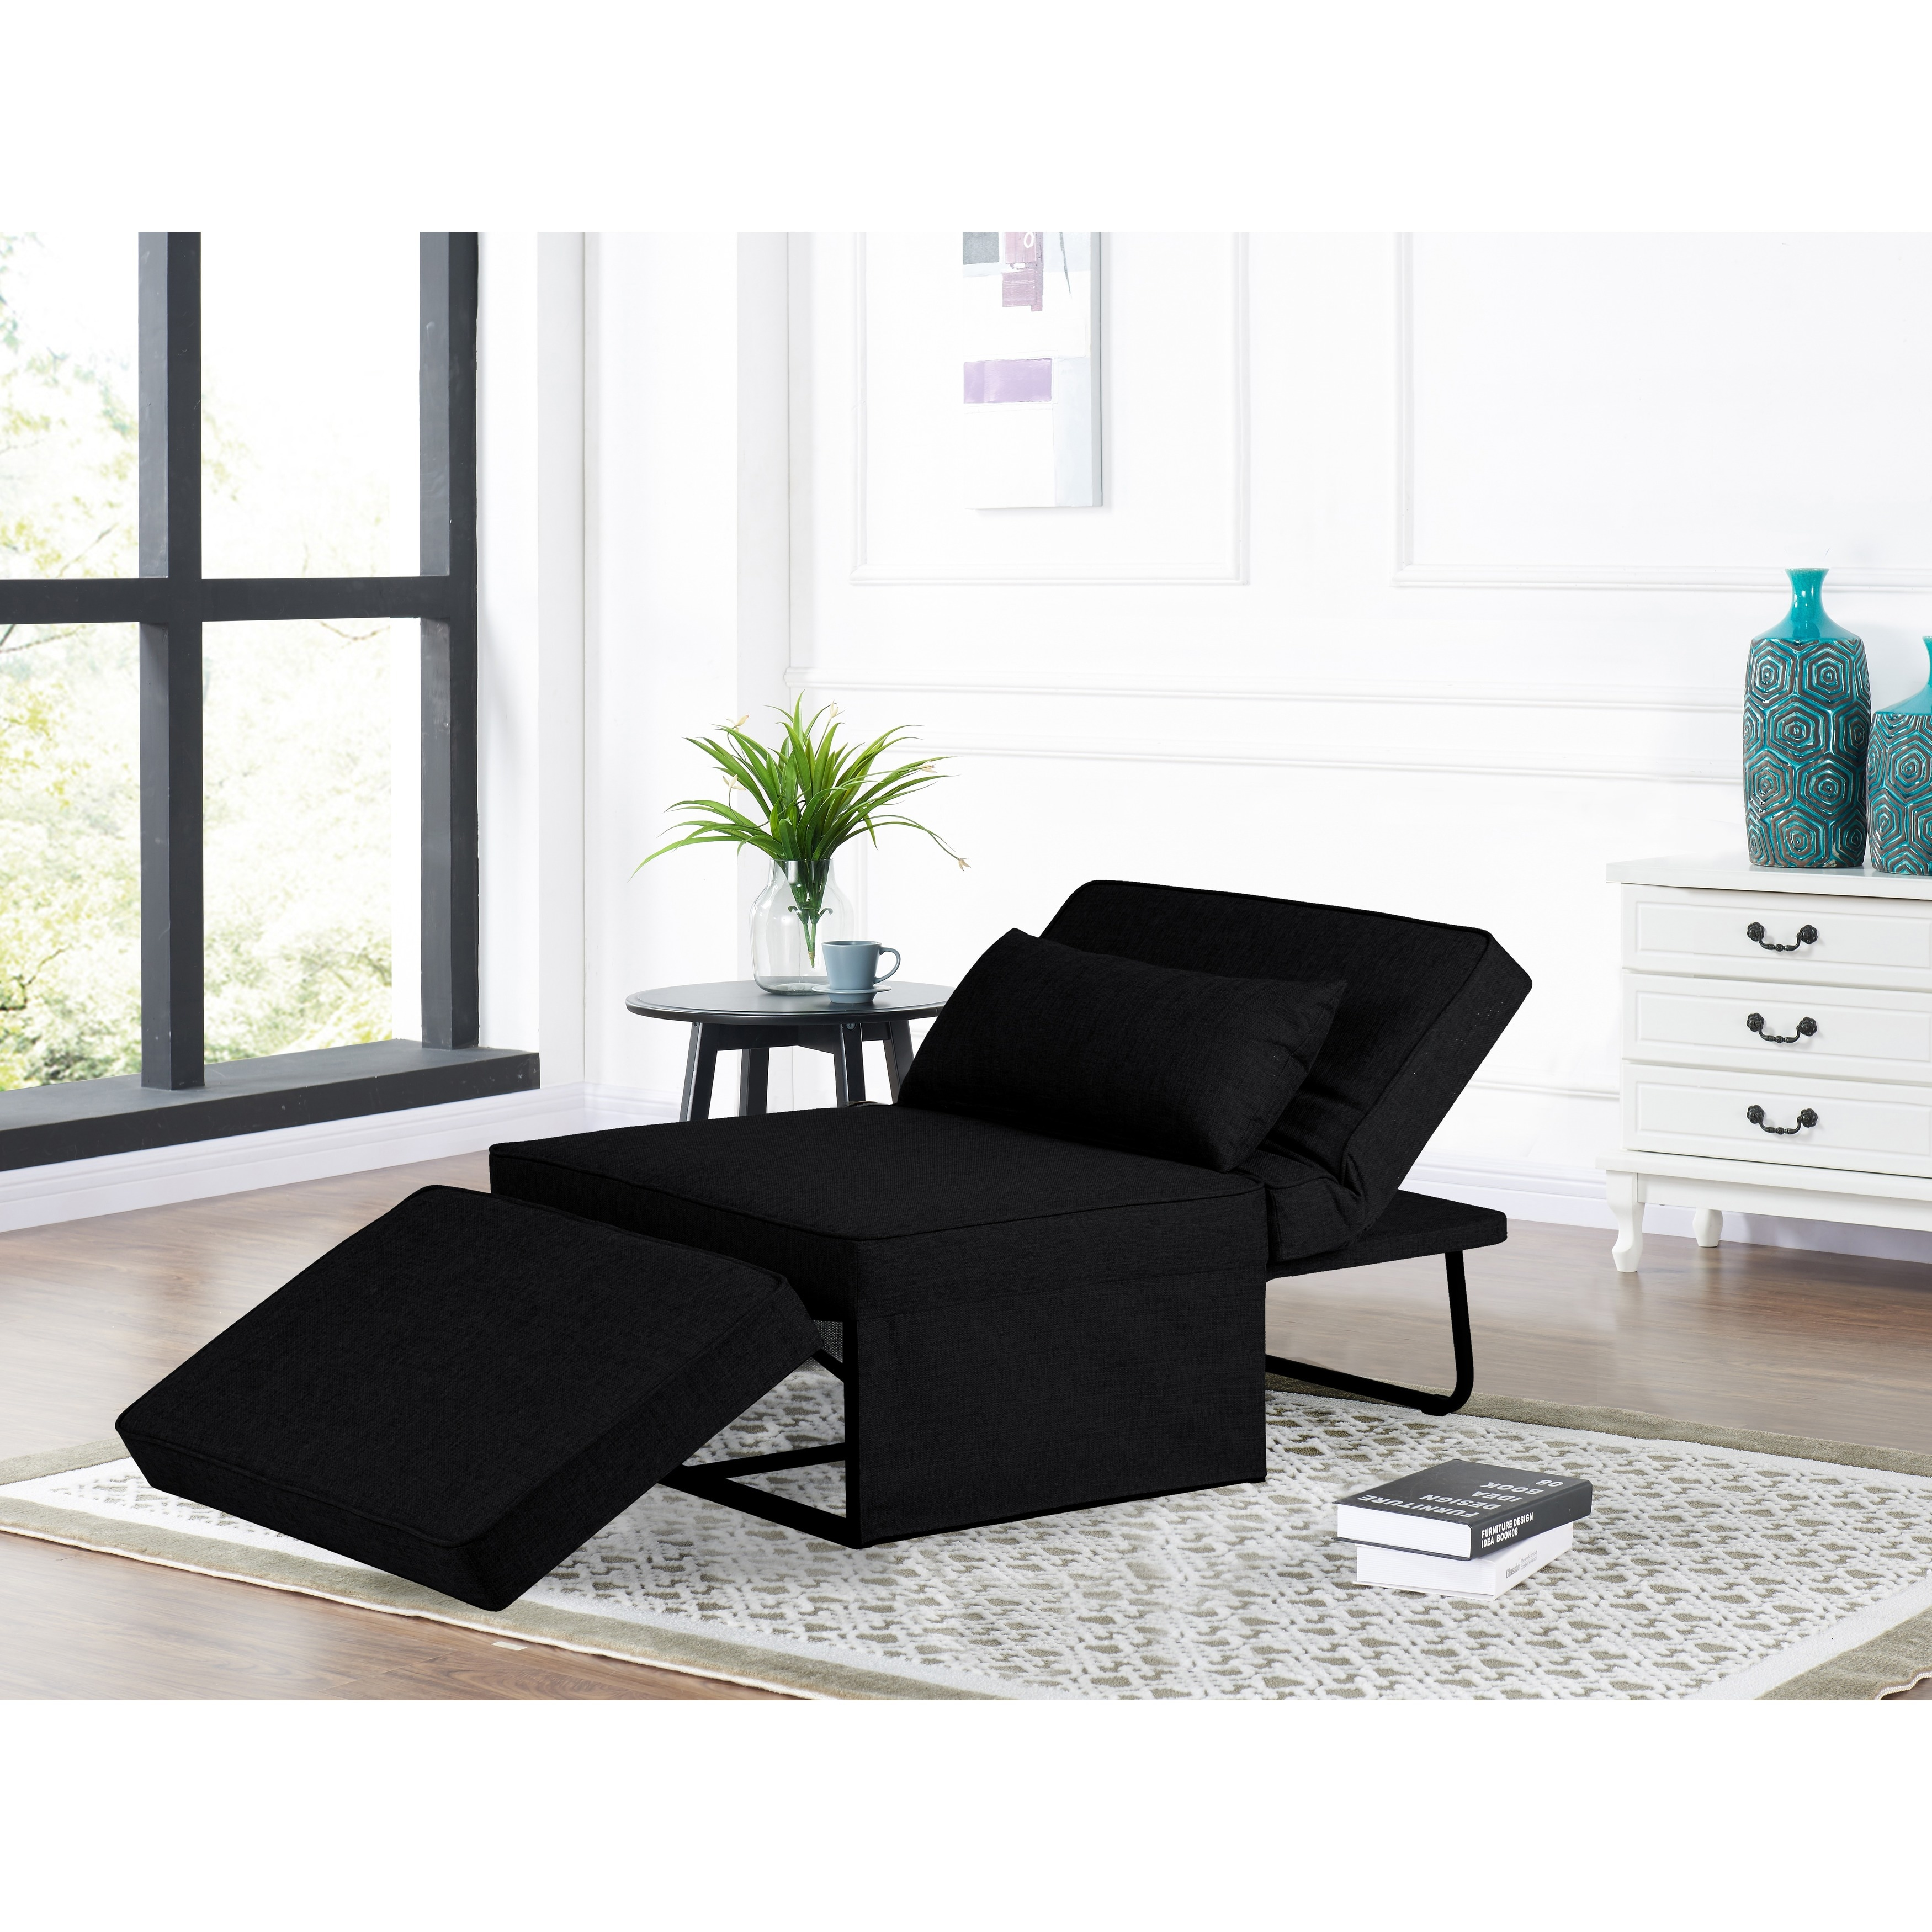 Shop Relax A Lounger Montgomery Convertible Ottoman by Lifestyle ...